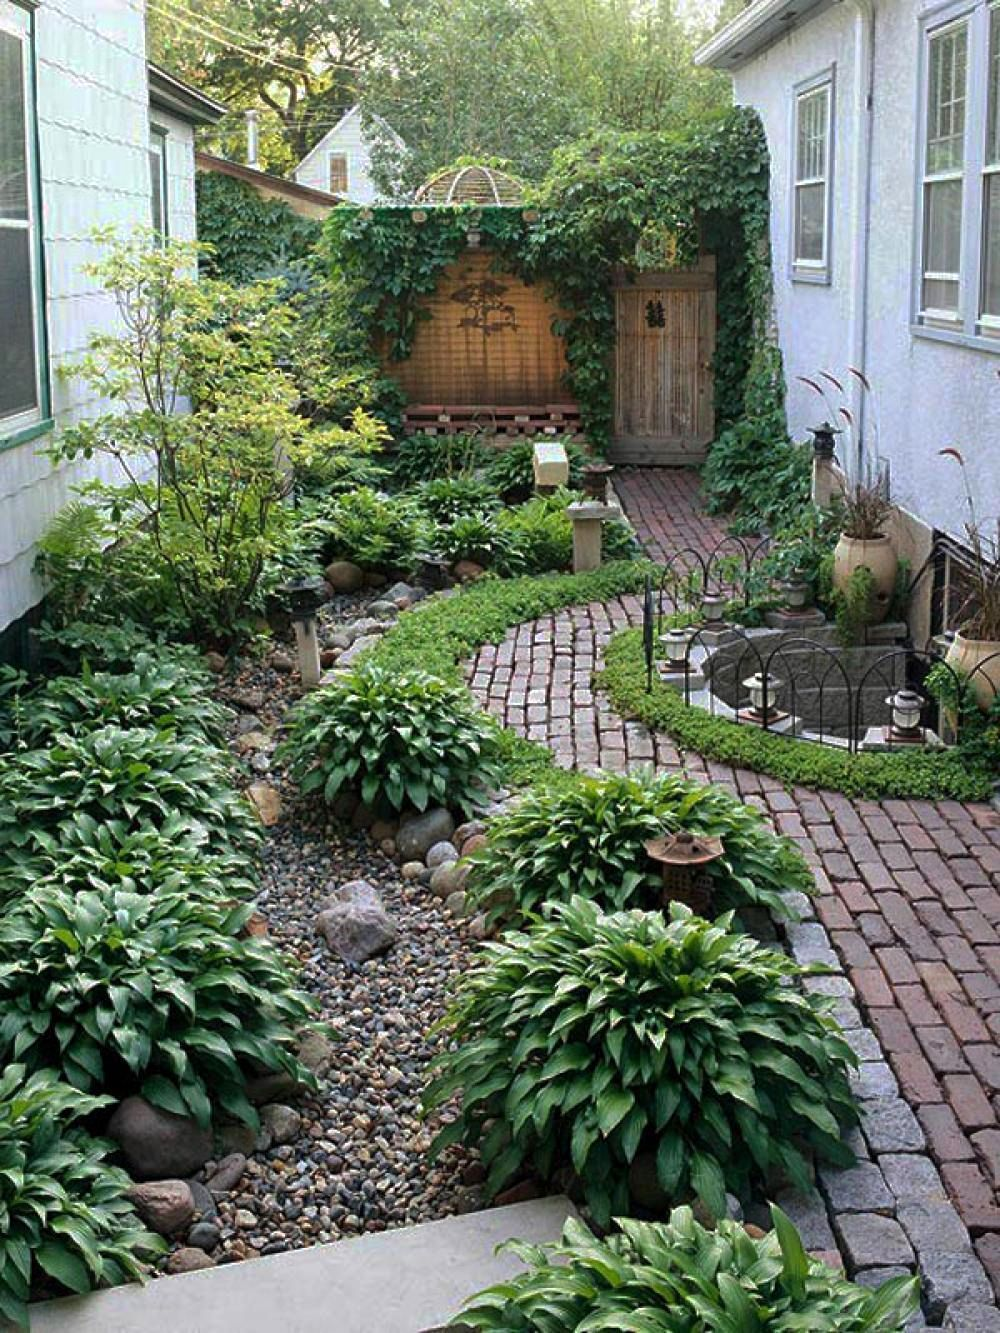 garden-and-patio-narrow-side-yard-house-design-with-simple-landscaping-ideas-and-garden-grass